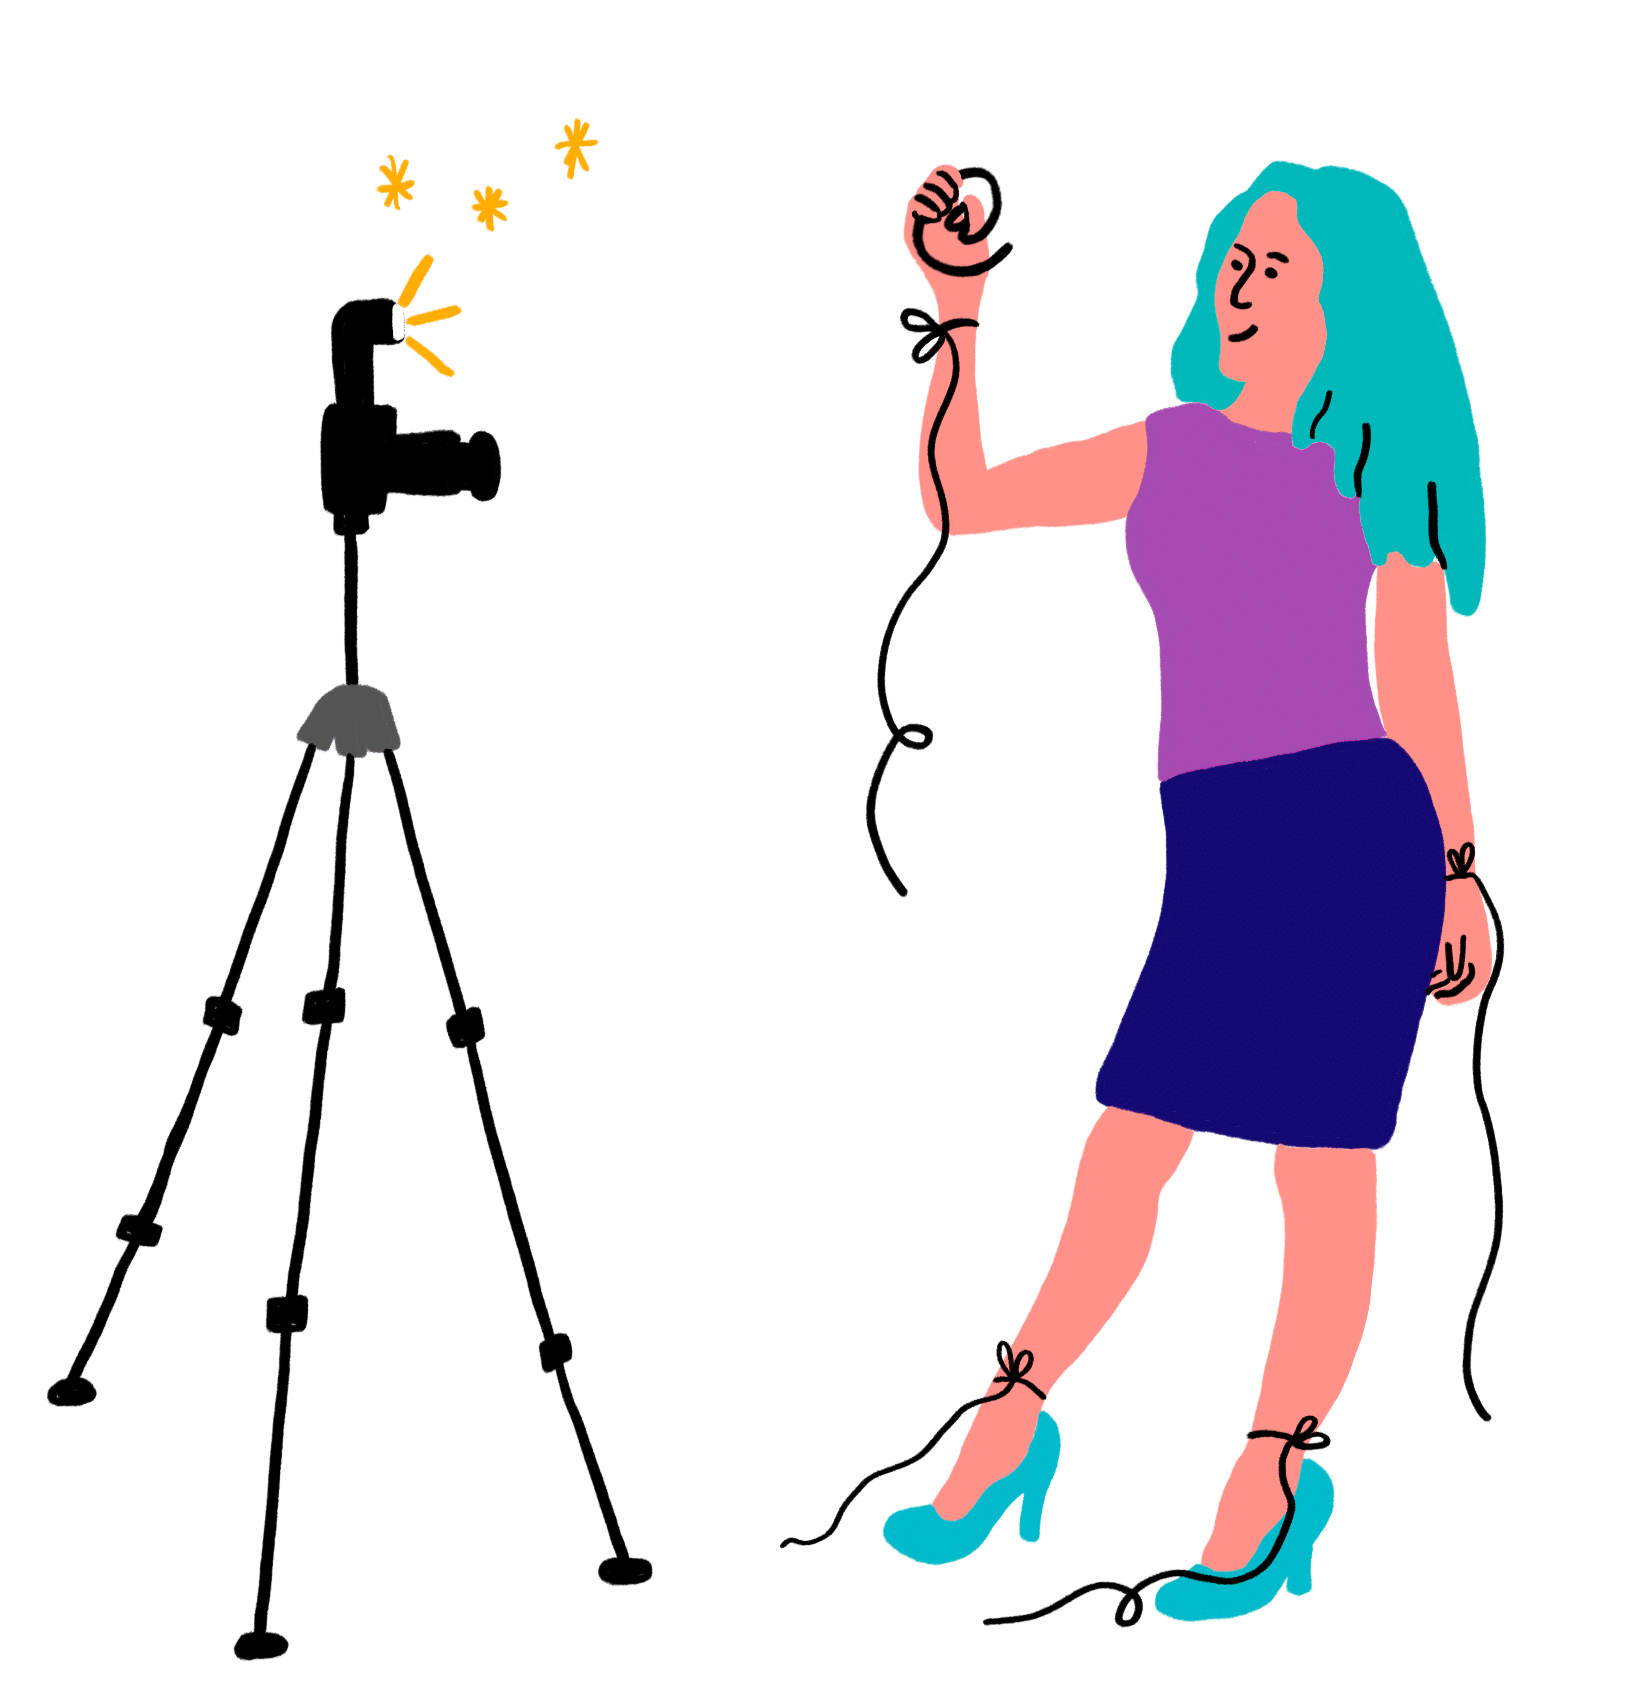 Illustration of person taking a selfie with a camera